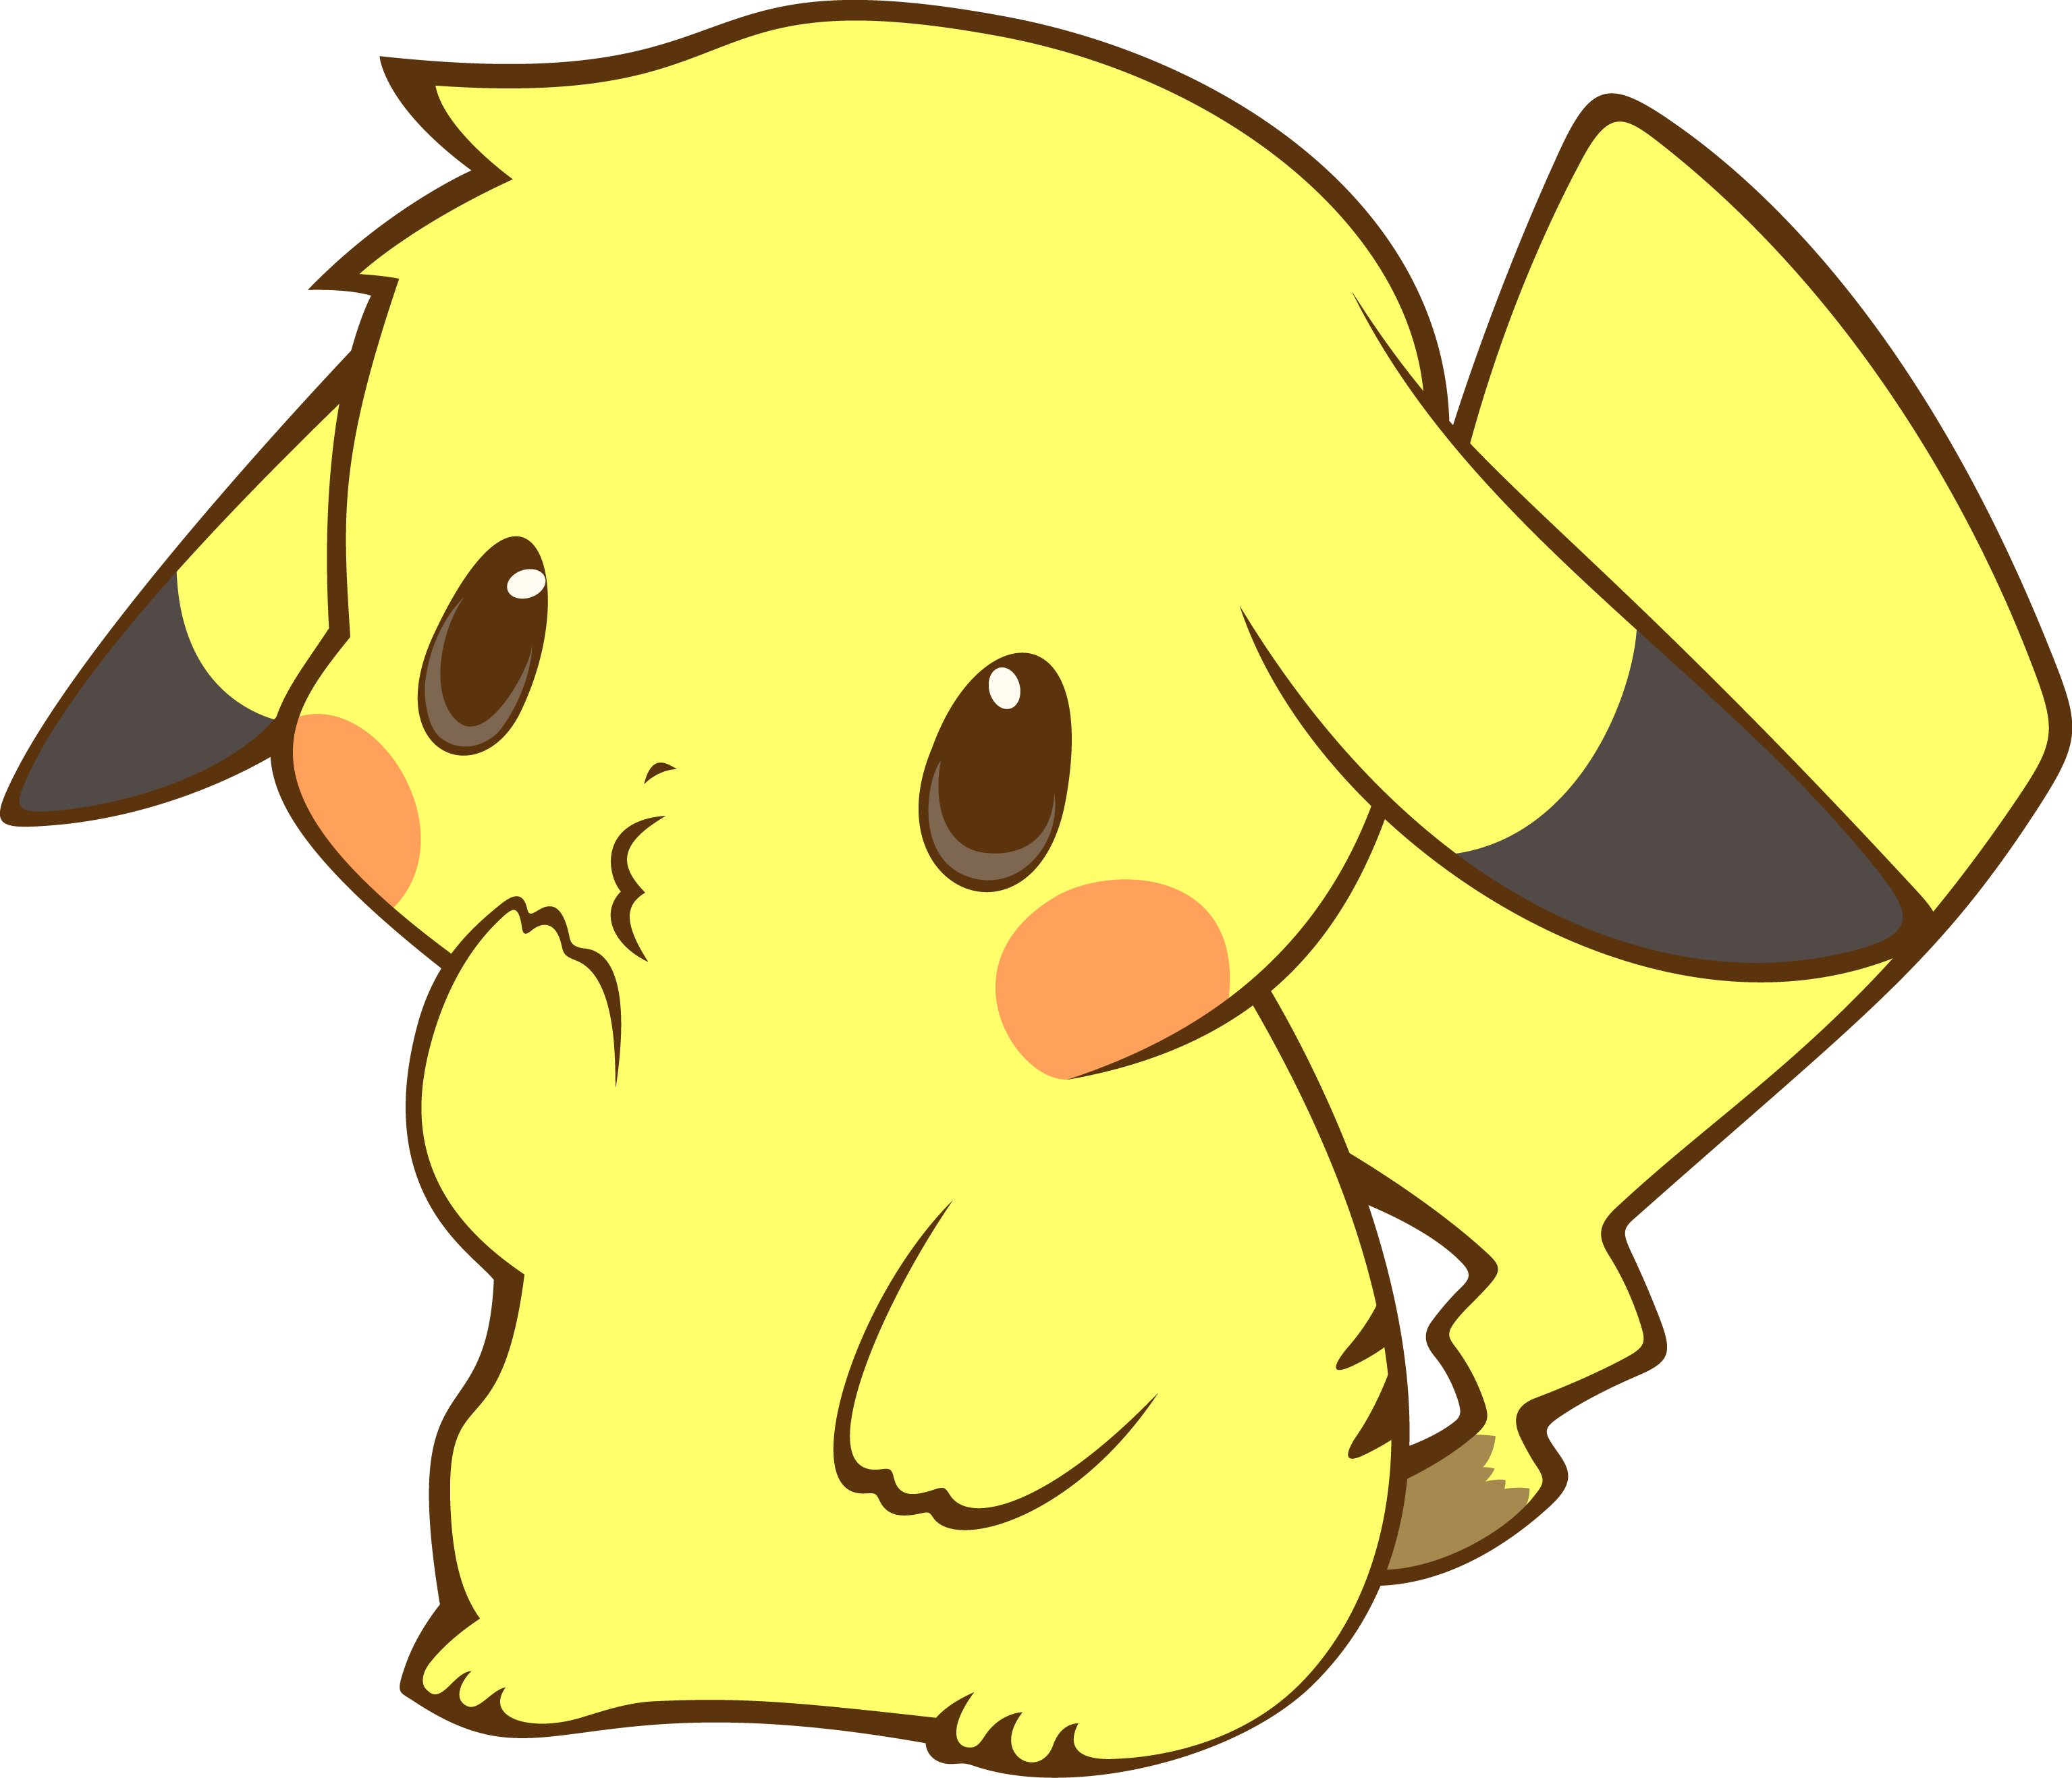 Wallpaper free wallpapers for. Pokeball clipart cute pikachu